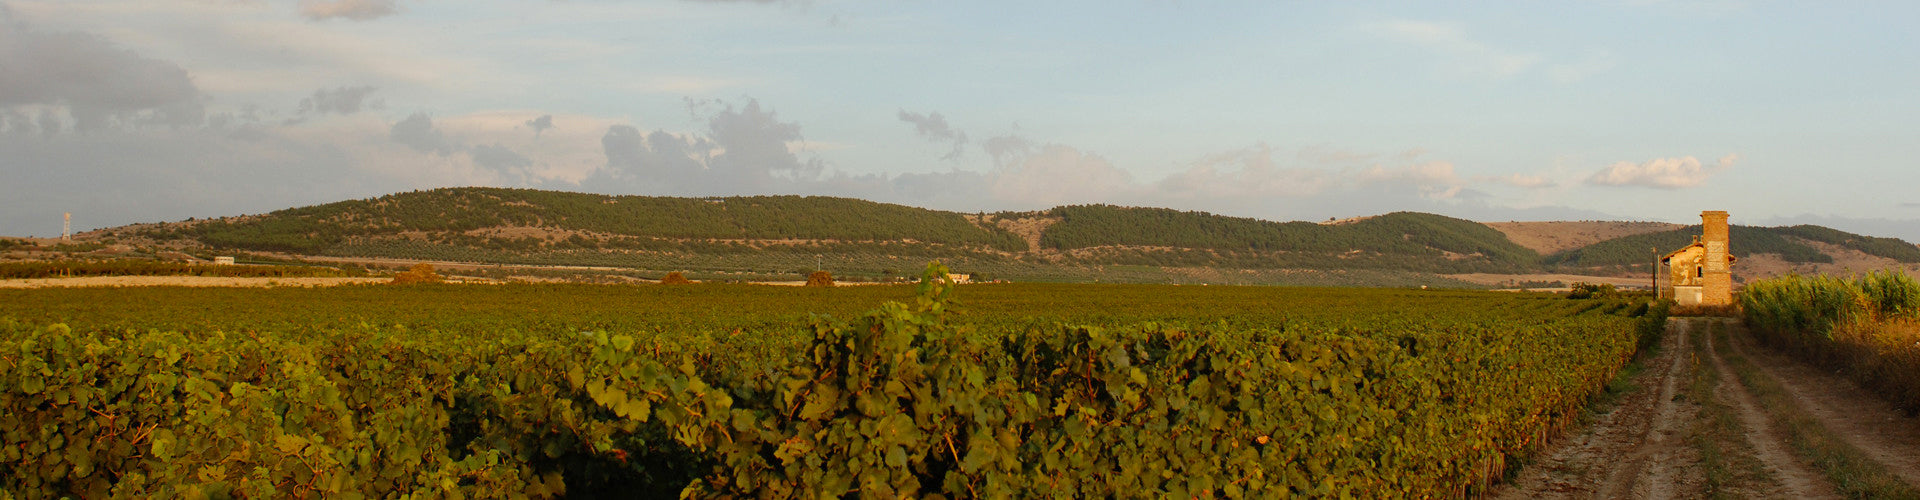 Tormaresca Vineyards in Puglia, Southern Italy